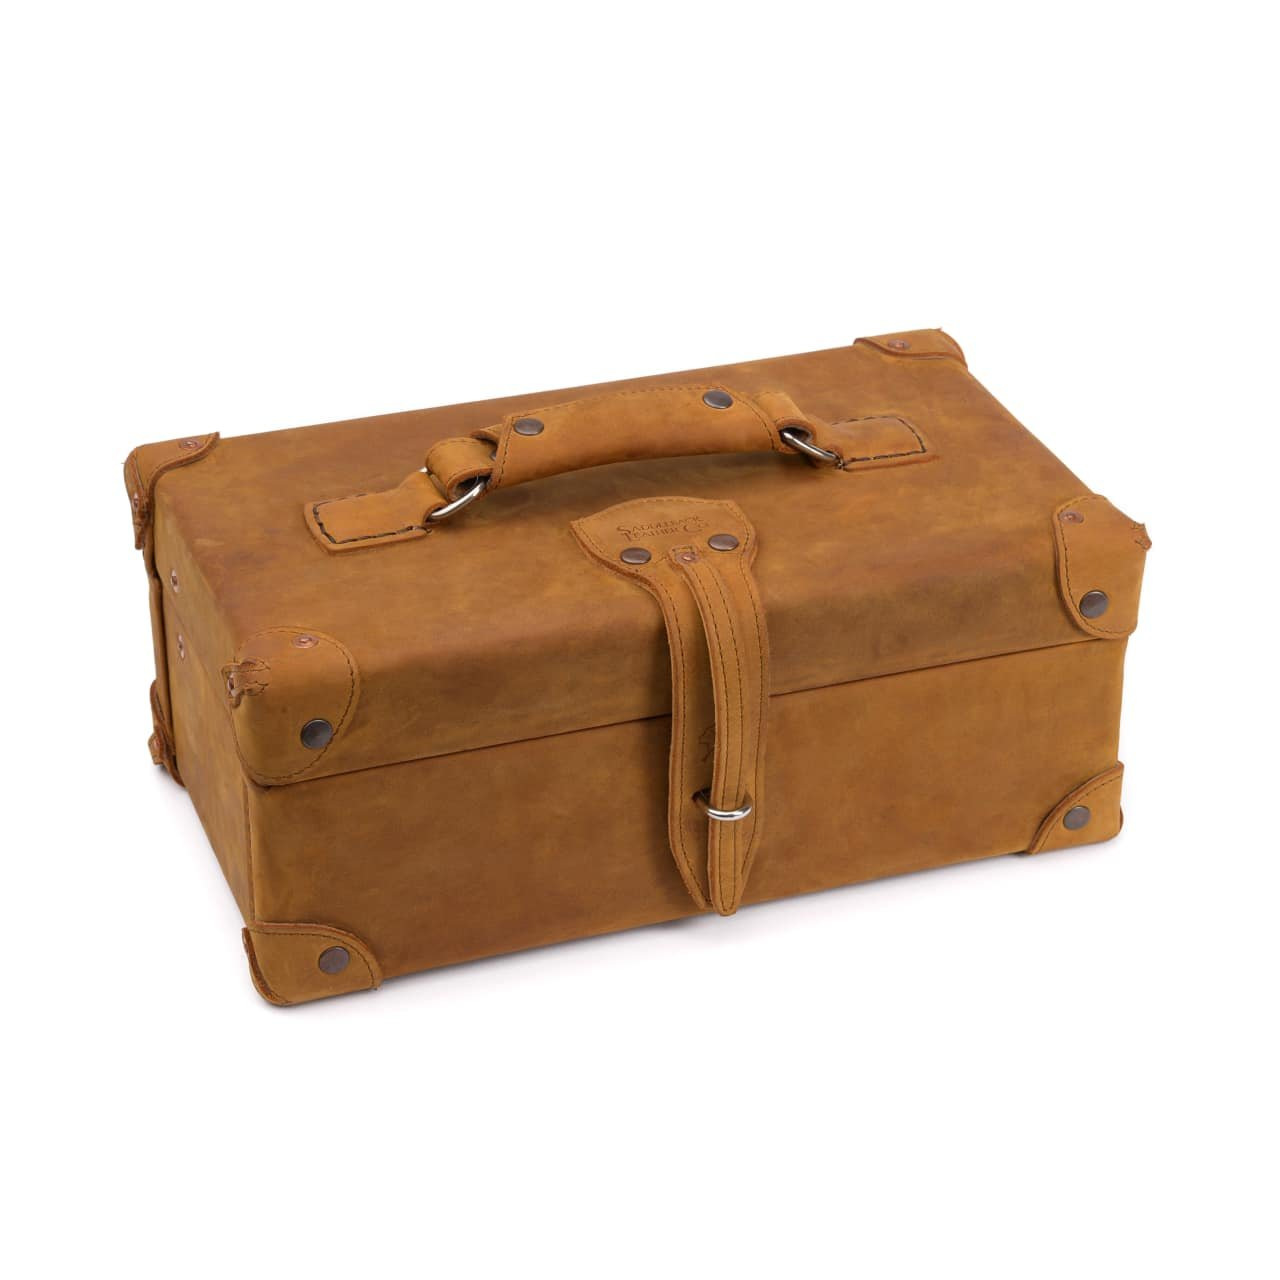 Saddleback Leather Watchmaker's Case - 100% Full Grain Leather Storage Box with 100 Year Warranty